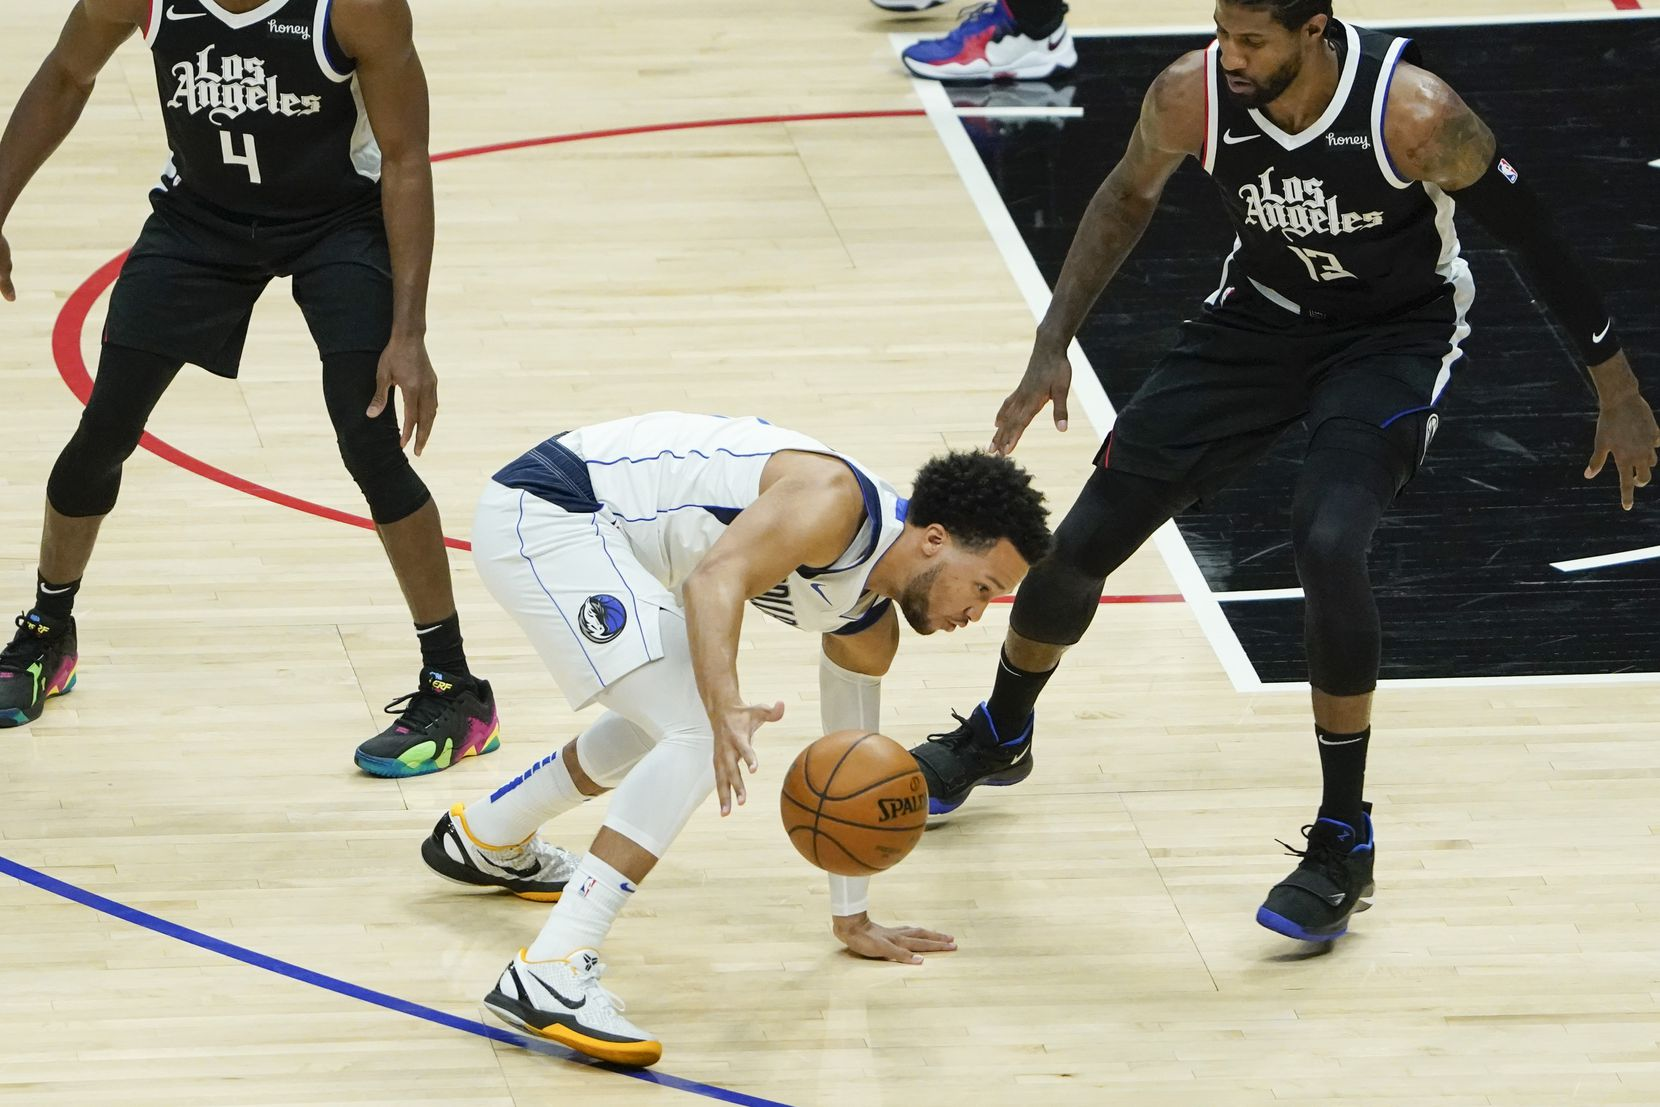 Dallas Mavericks guard Jalen Brunson (13) slips to the floor as he works against LA Clippers guard Paul George during the first quarter of an NBA playoff basketball game at the Staples Center on Wednesday, June 2, 2021, in Los Angeles.  (Smiley N. Pool/The Dallas Morning News)